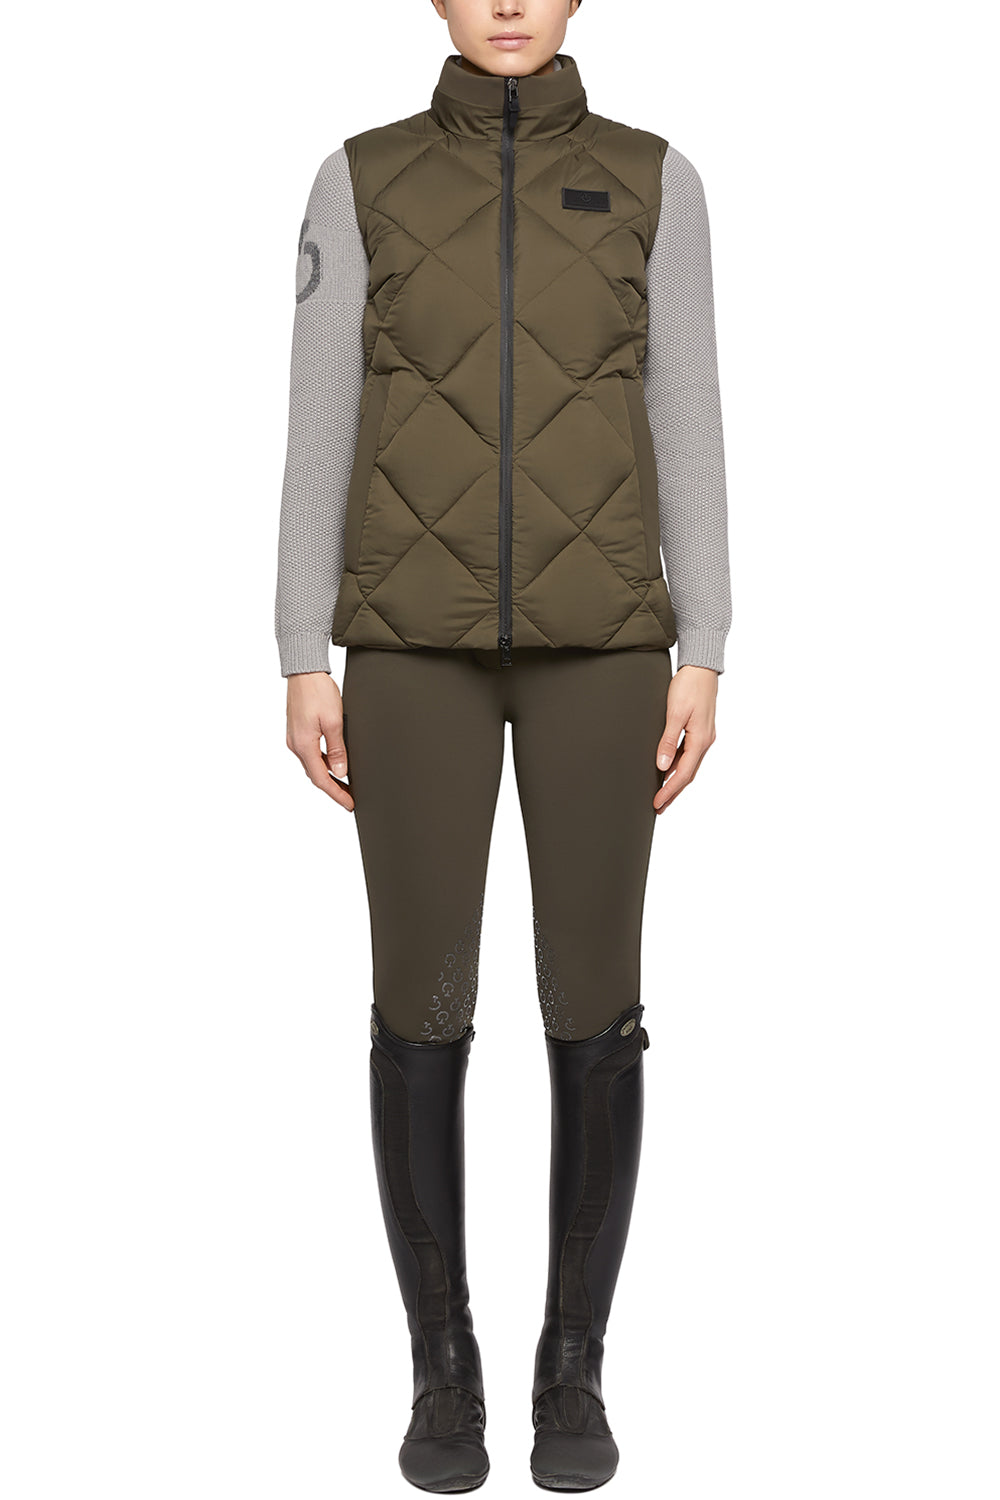 Cavalleria Toscana Nylon Hooded Vest W/Fleece Pocket Lining